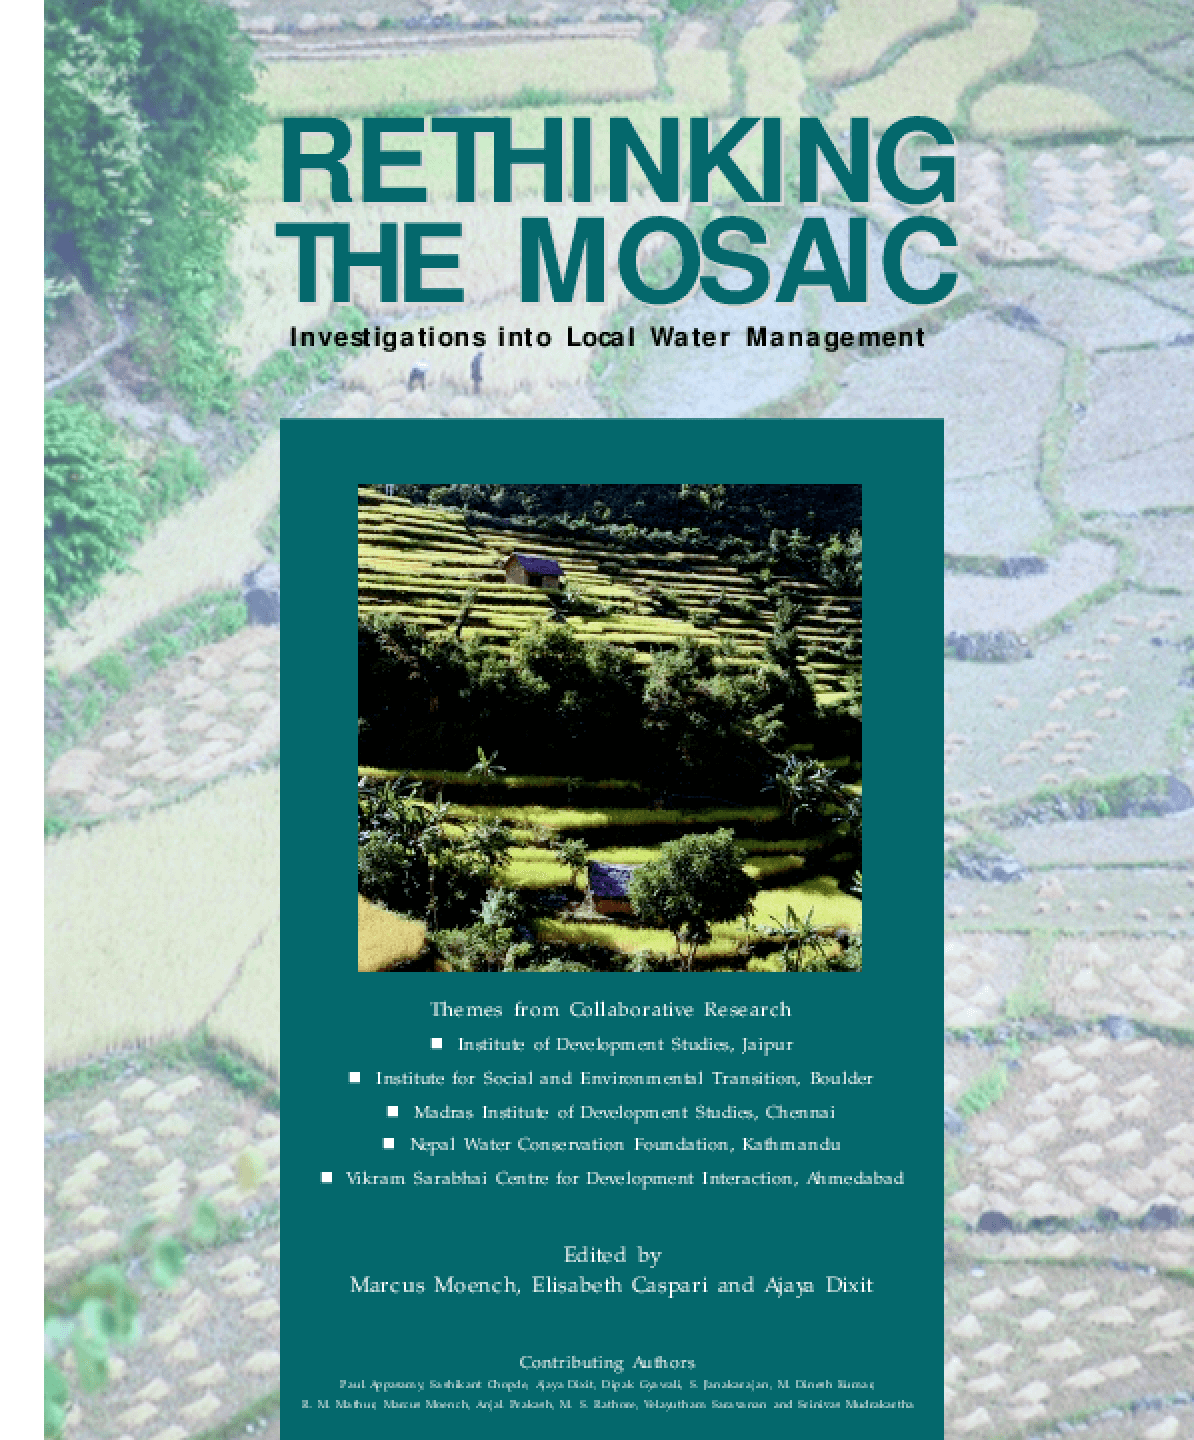 Rethinking the Mosaic: Investigations into Local Water Management